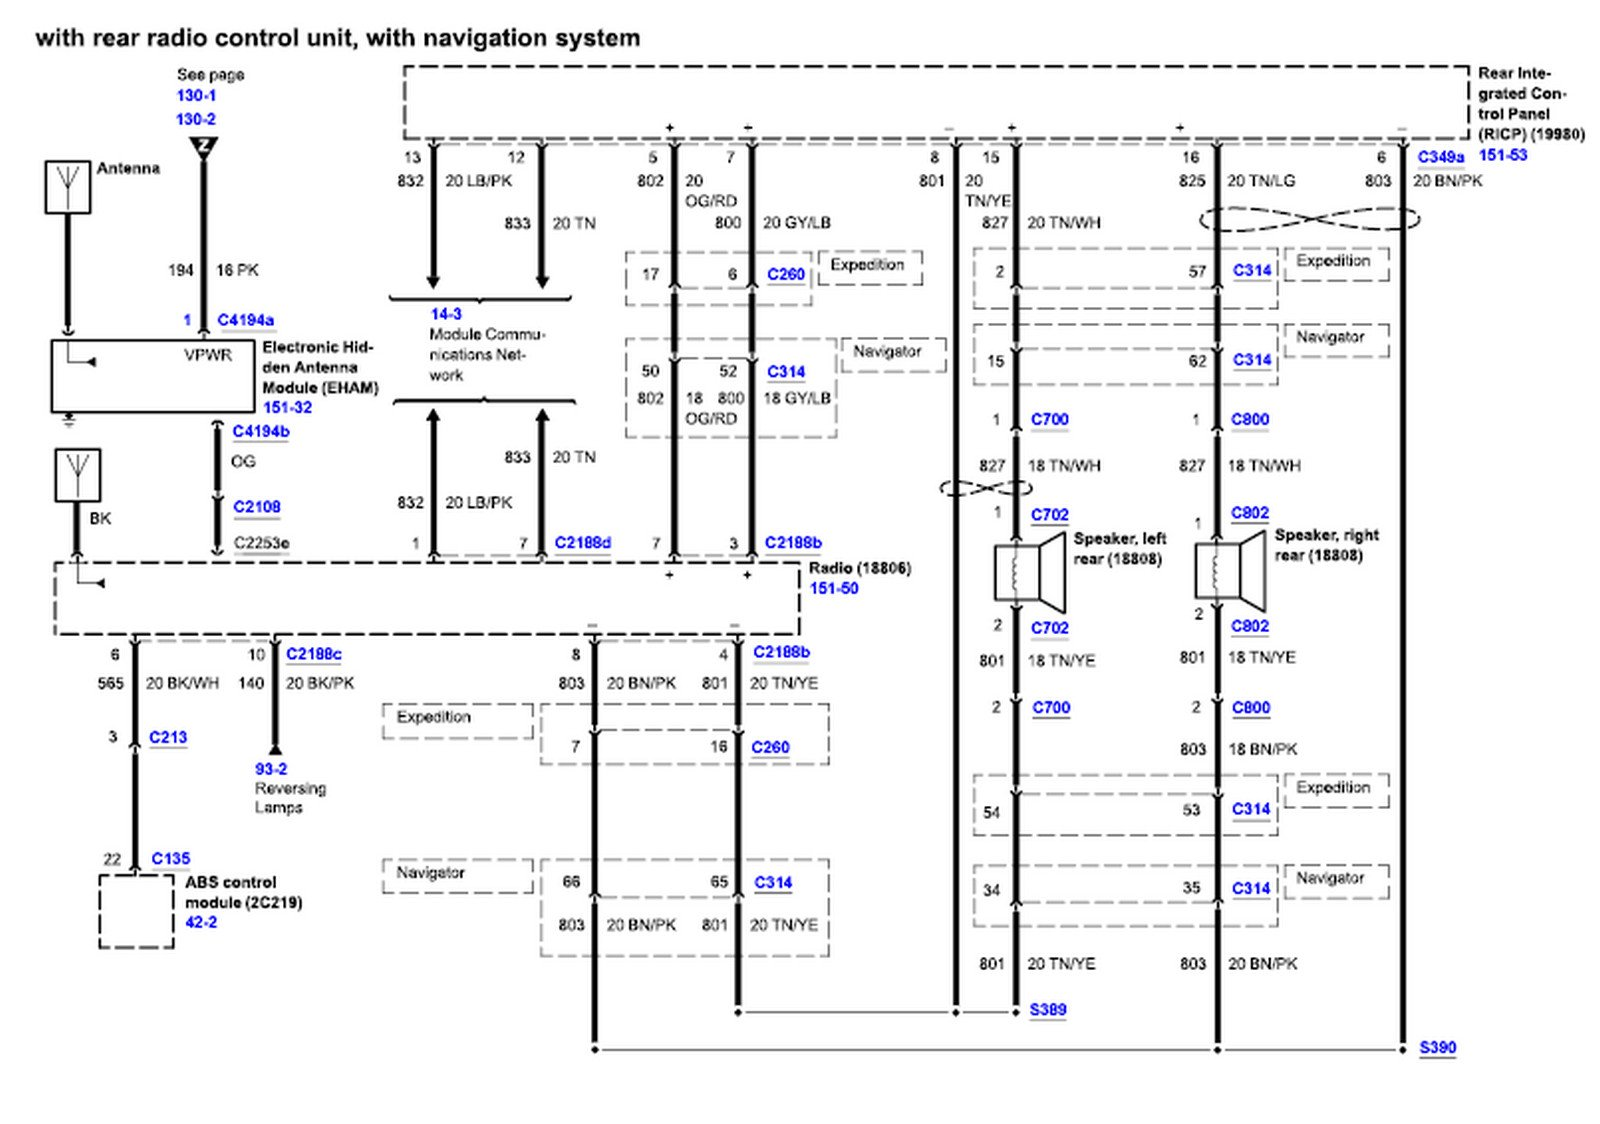 1997 Ford Expedition Radio Wiring Diagram from ww2.justanswer.com